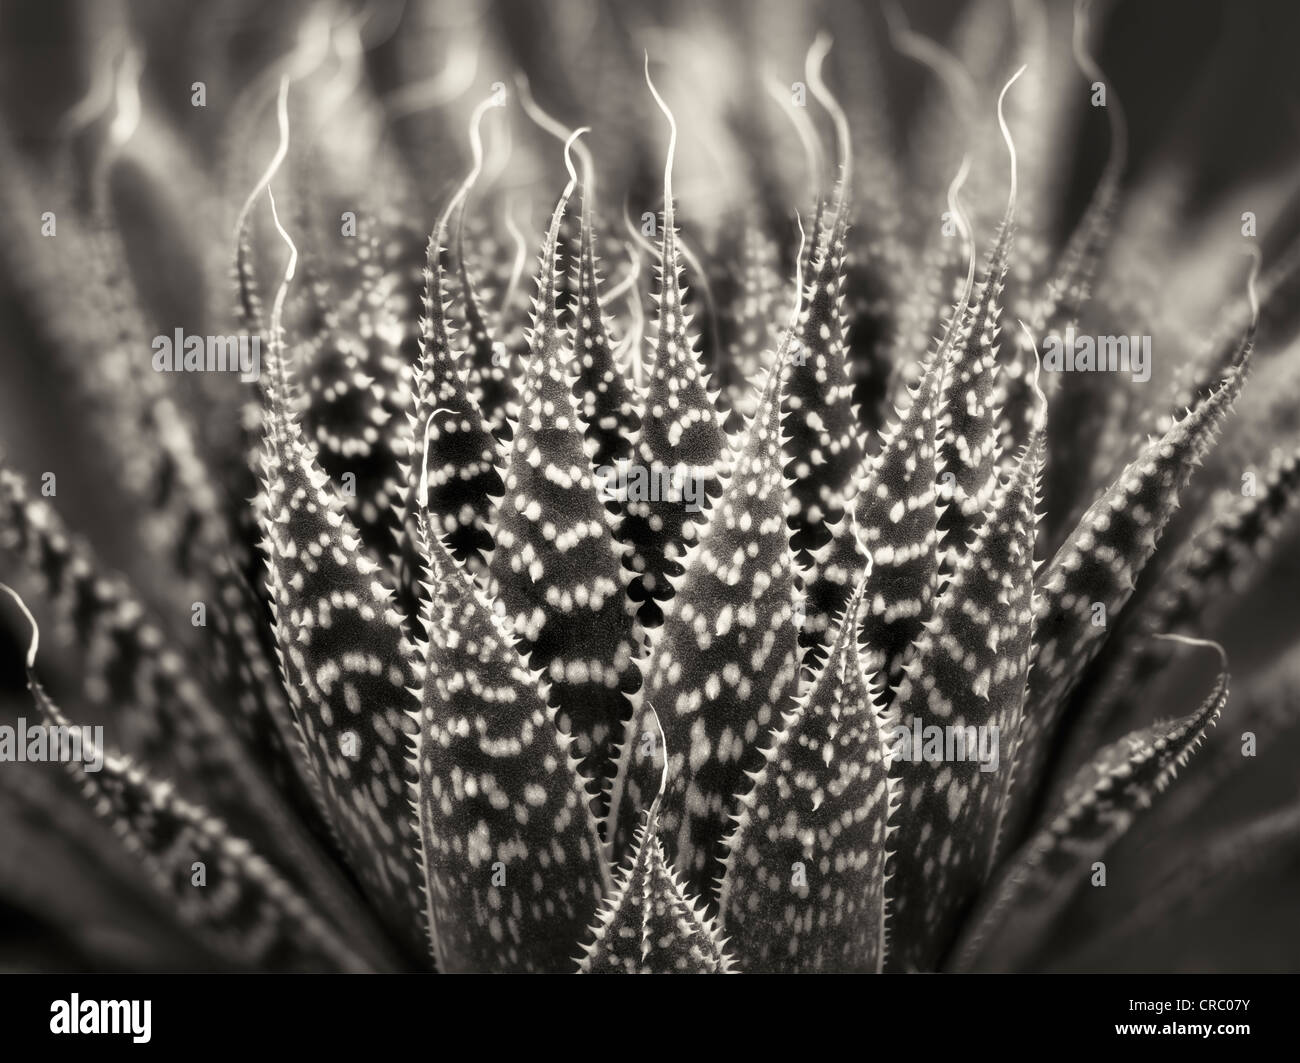 Close up of Zebra/Pearly Dots plant. Oregon Stock Photo